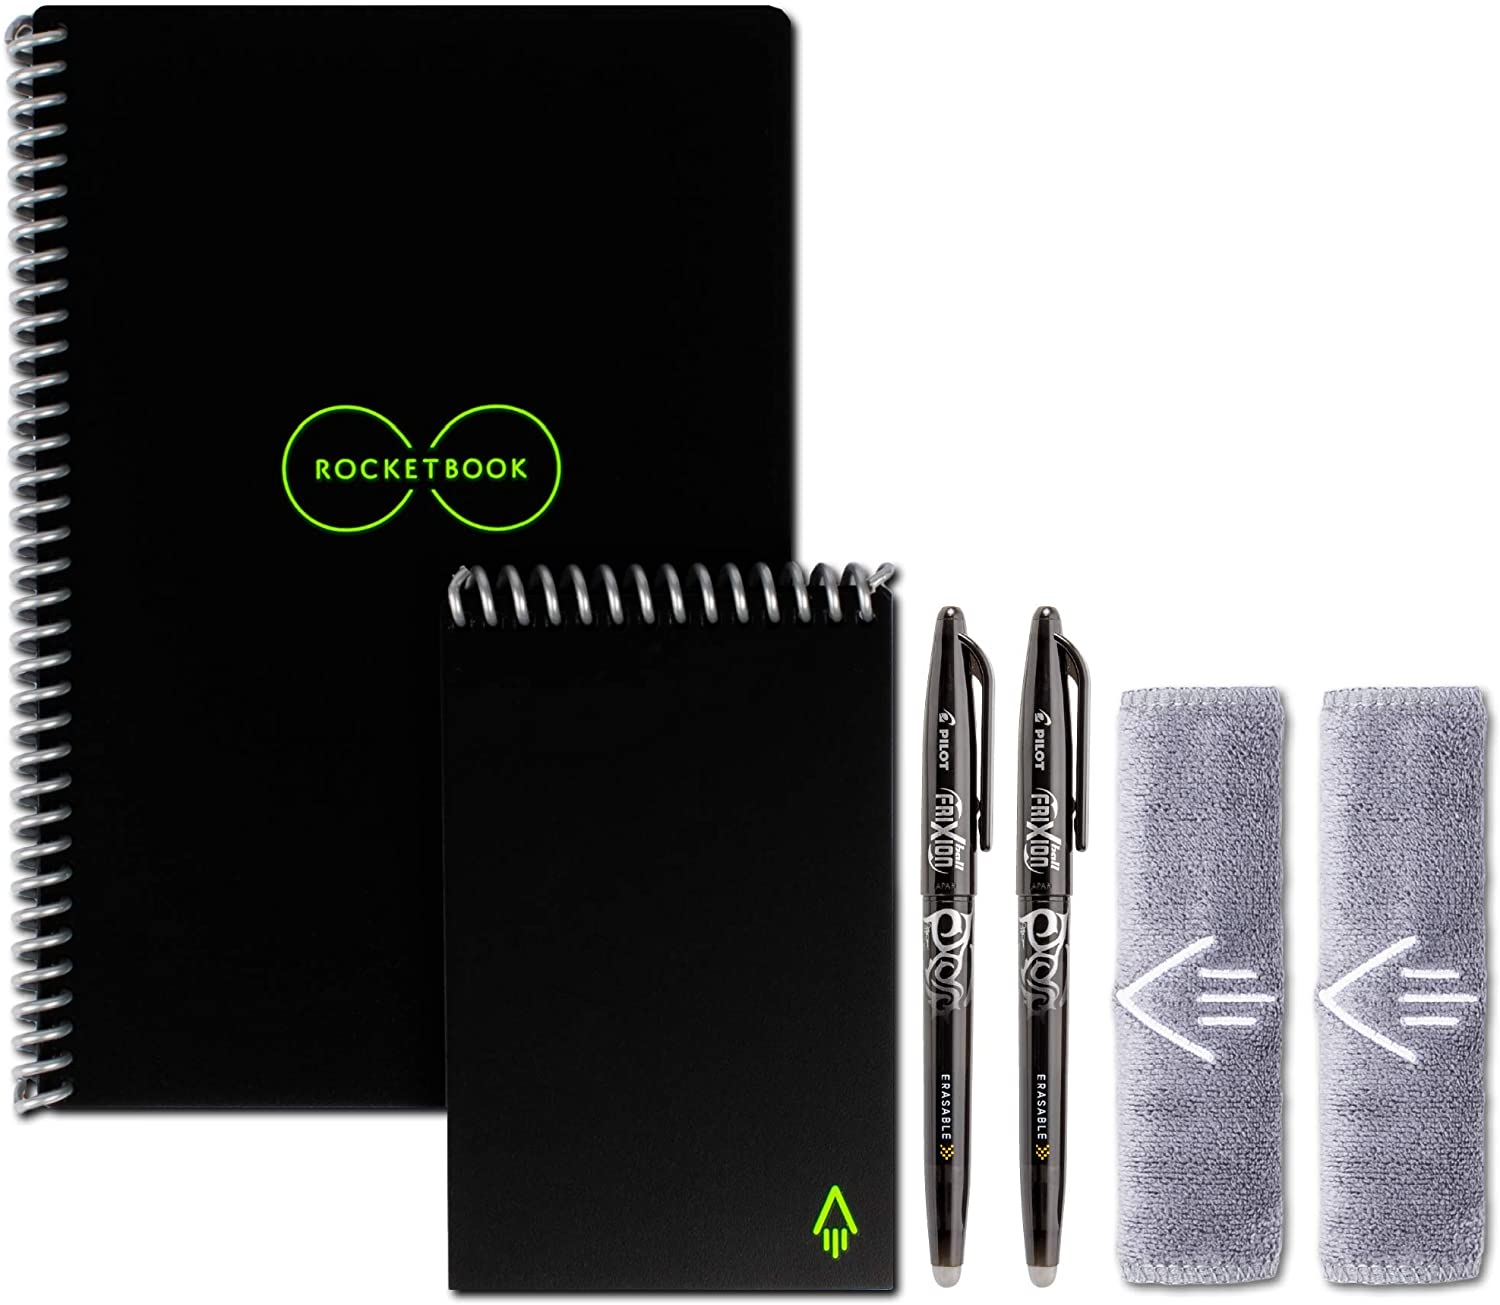 Smart Reusable Rocketbook Notebook Set